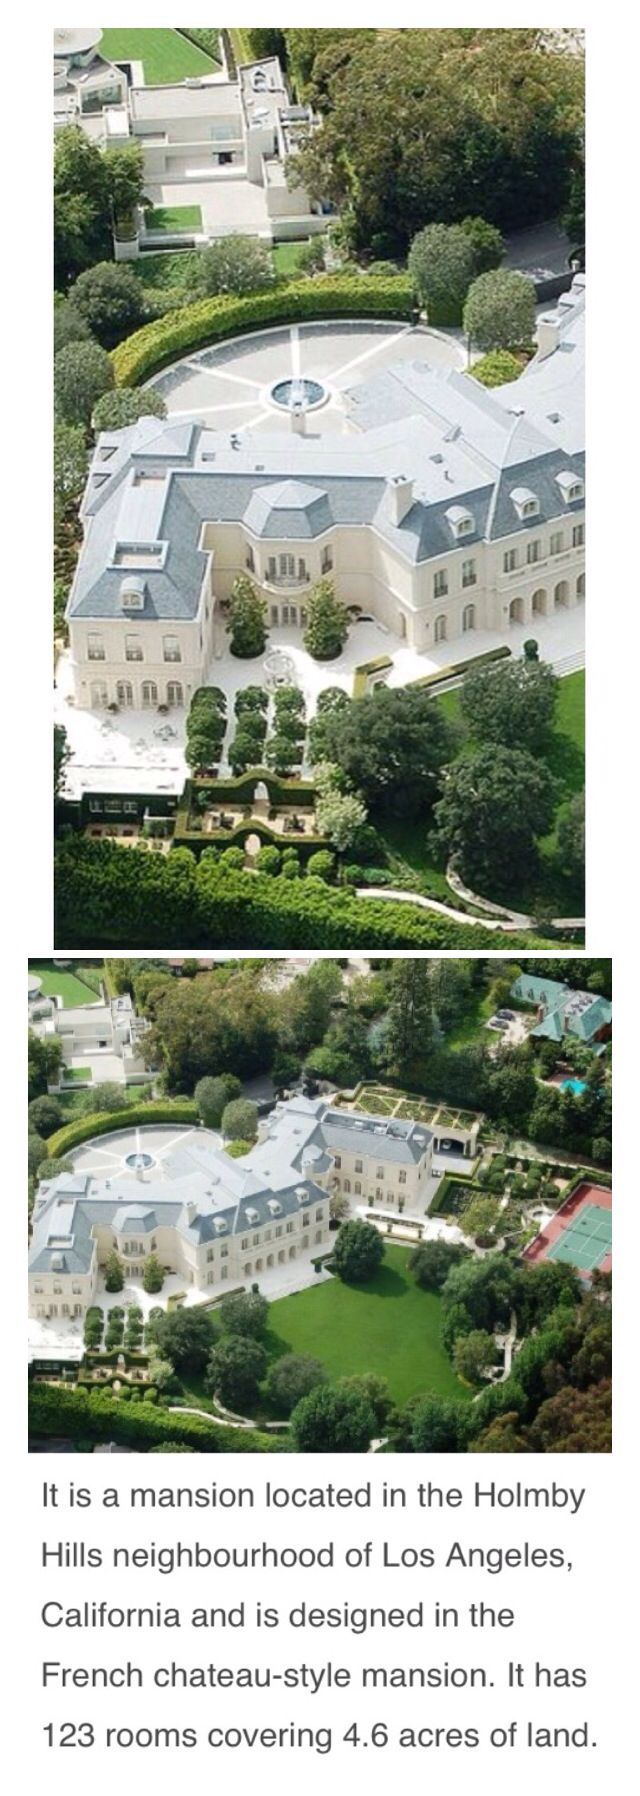 #Luxury#Mansions holy shit now that's a luxurious mansion I'd love to live in with my hot wife!!!!!!!!!! YES two princesses living in this castle loves it <3